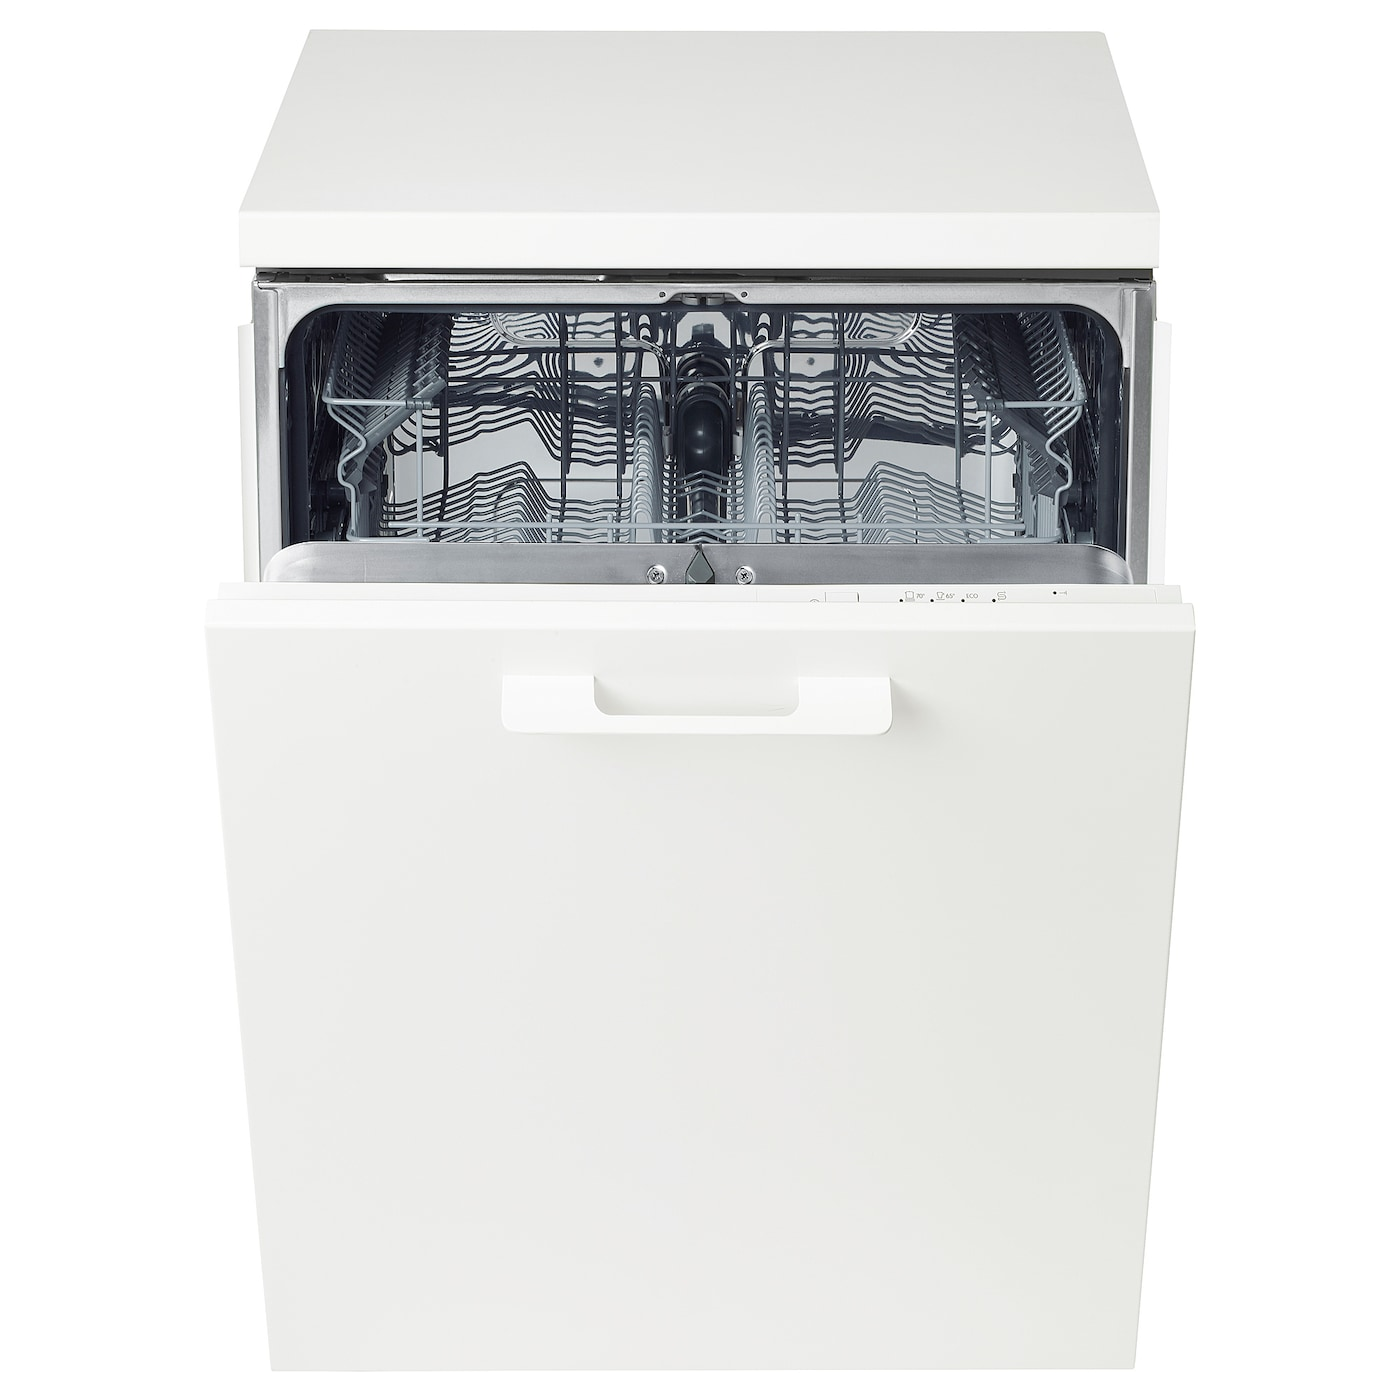 IKEA LAGAN integrated dishwasher 2 year guarantee. Read about the terms in the guarantee brochure.